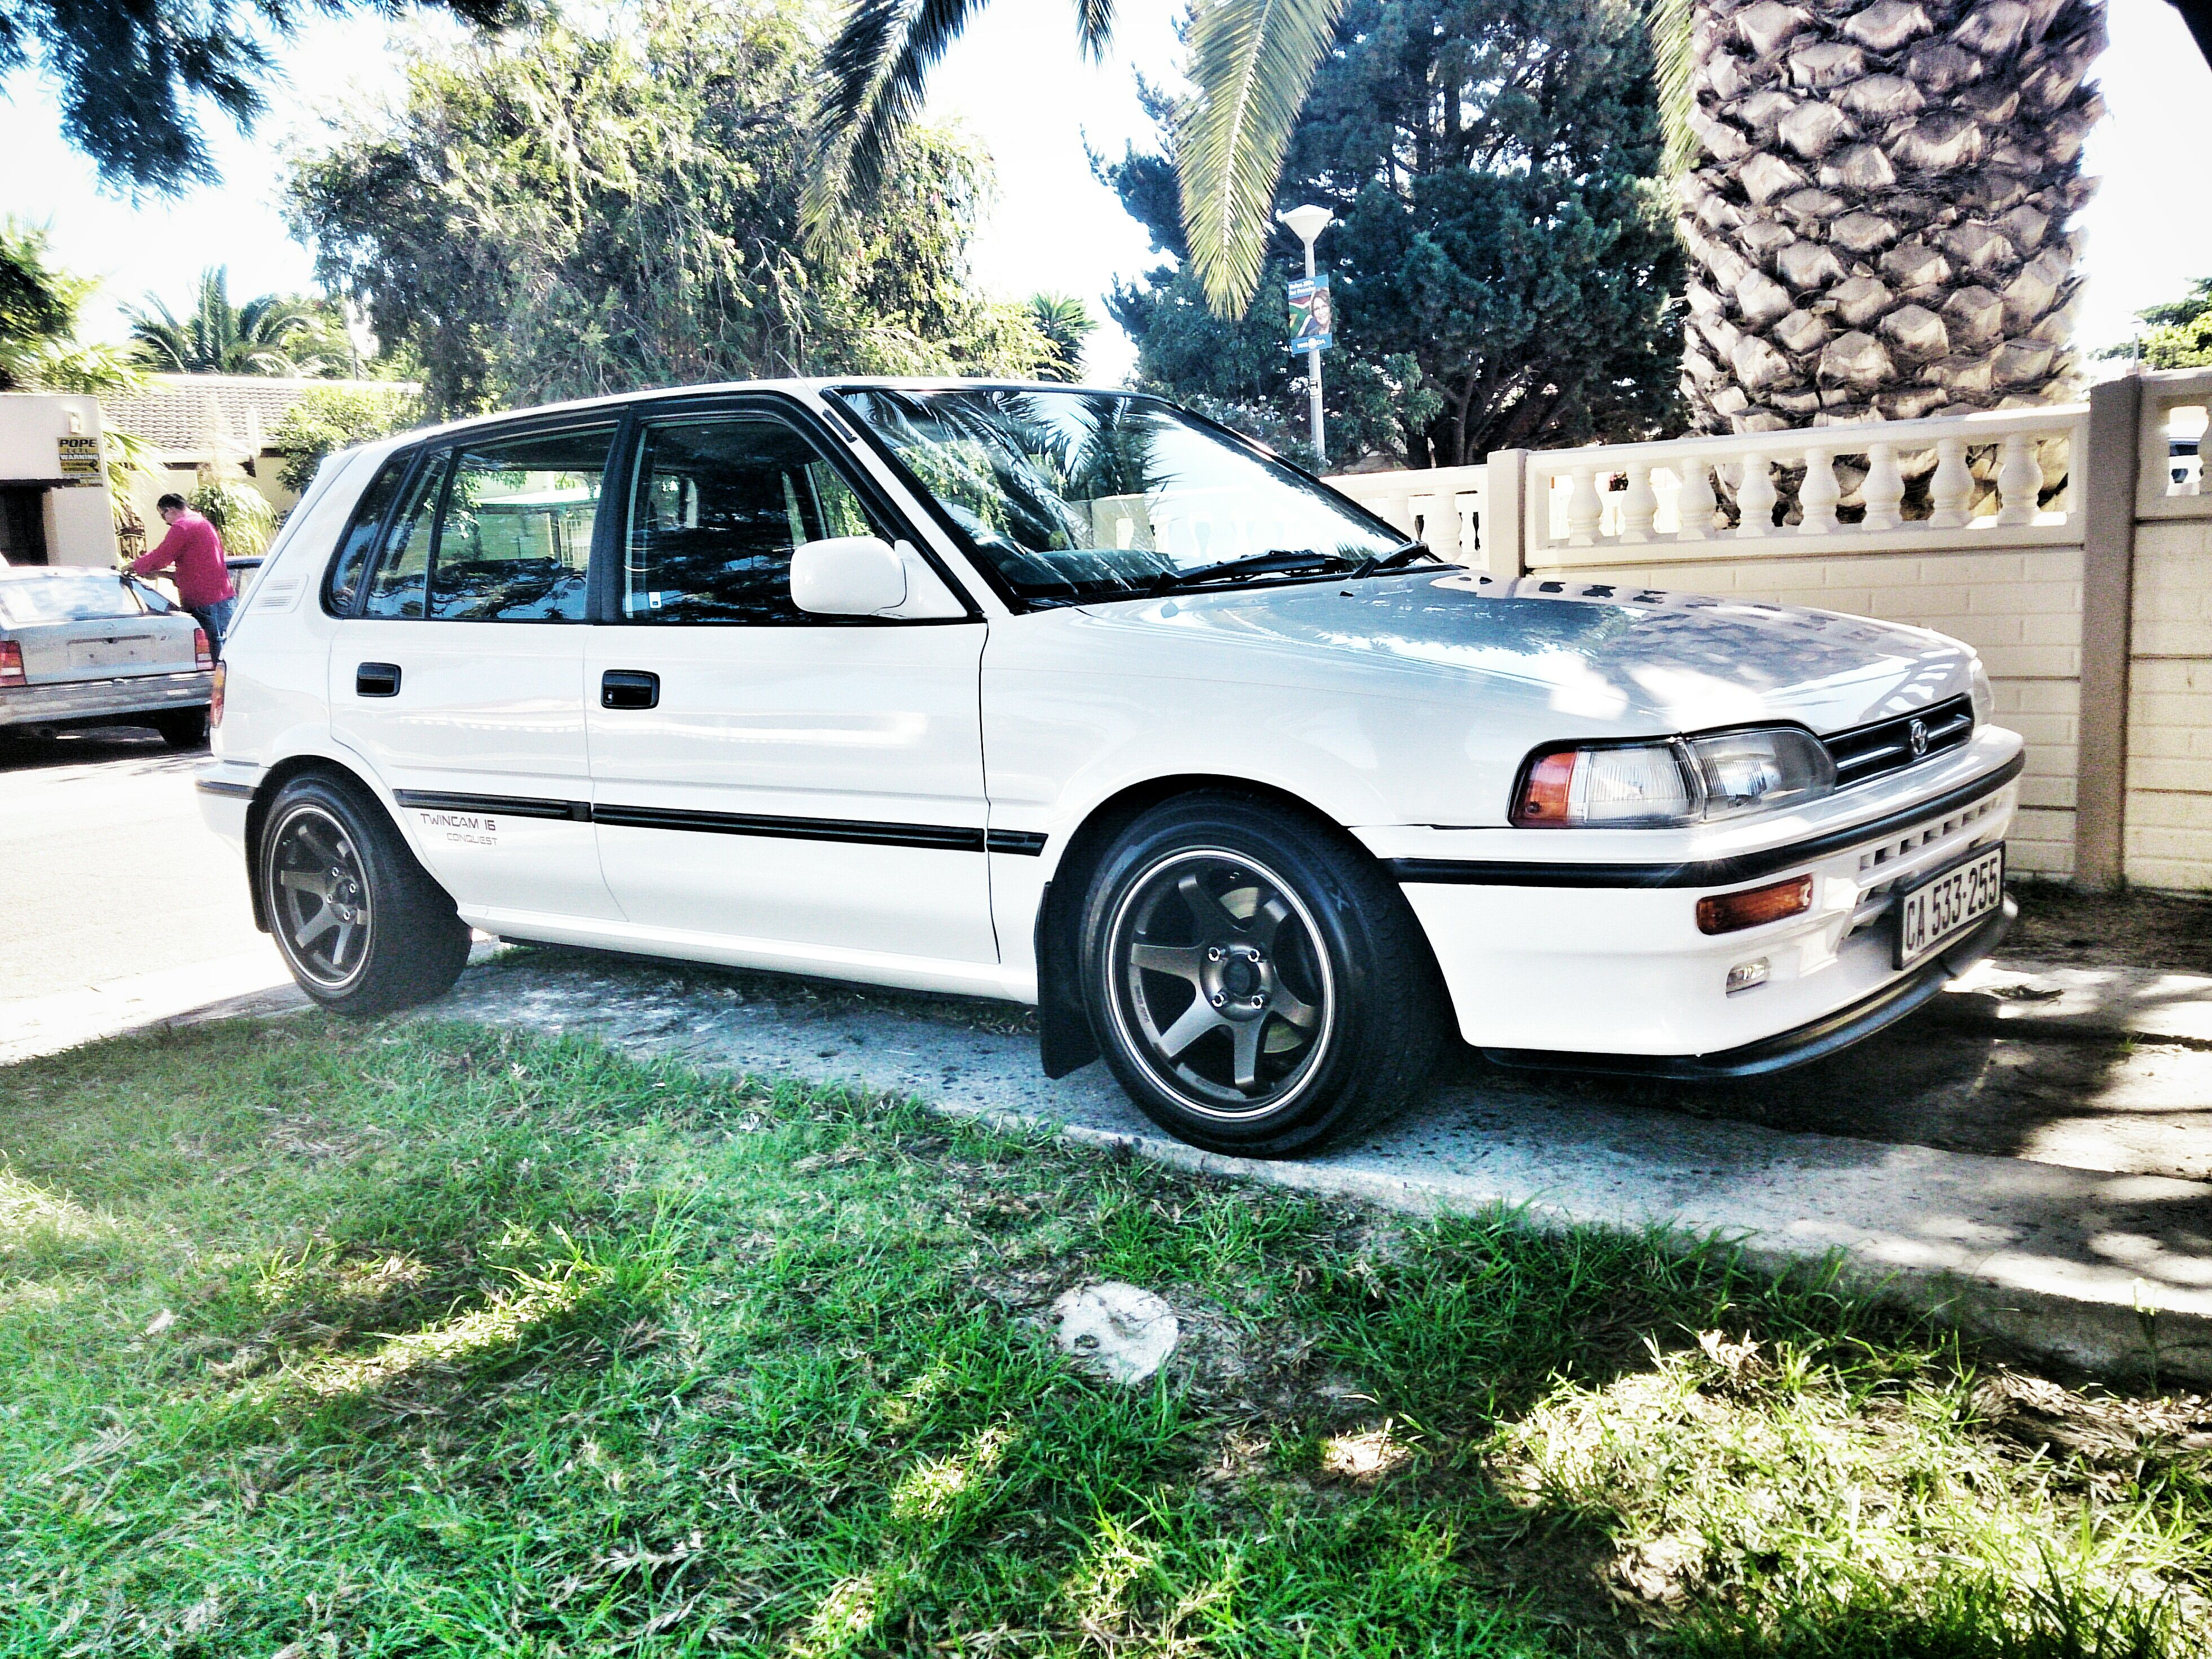 medium resolution of my ae92 toyota corolla jdm cool cars cars and motorcycles automobile